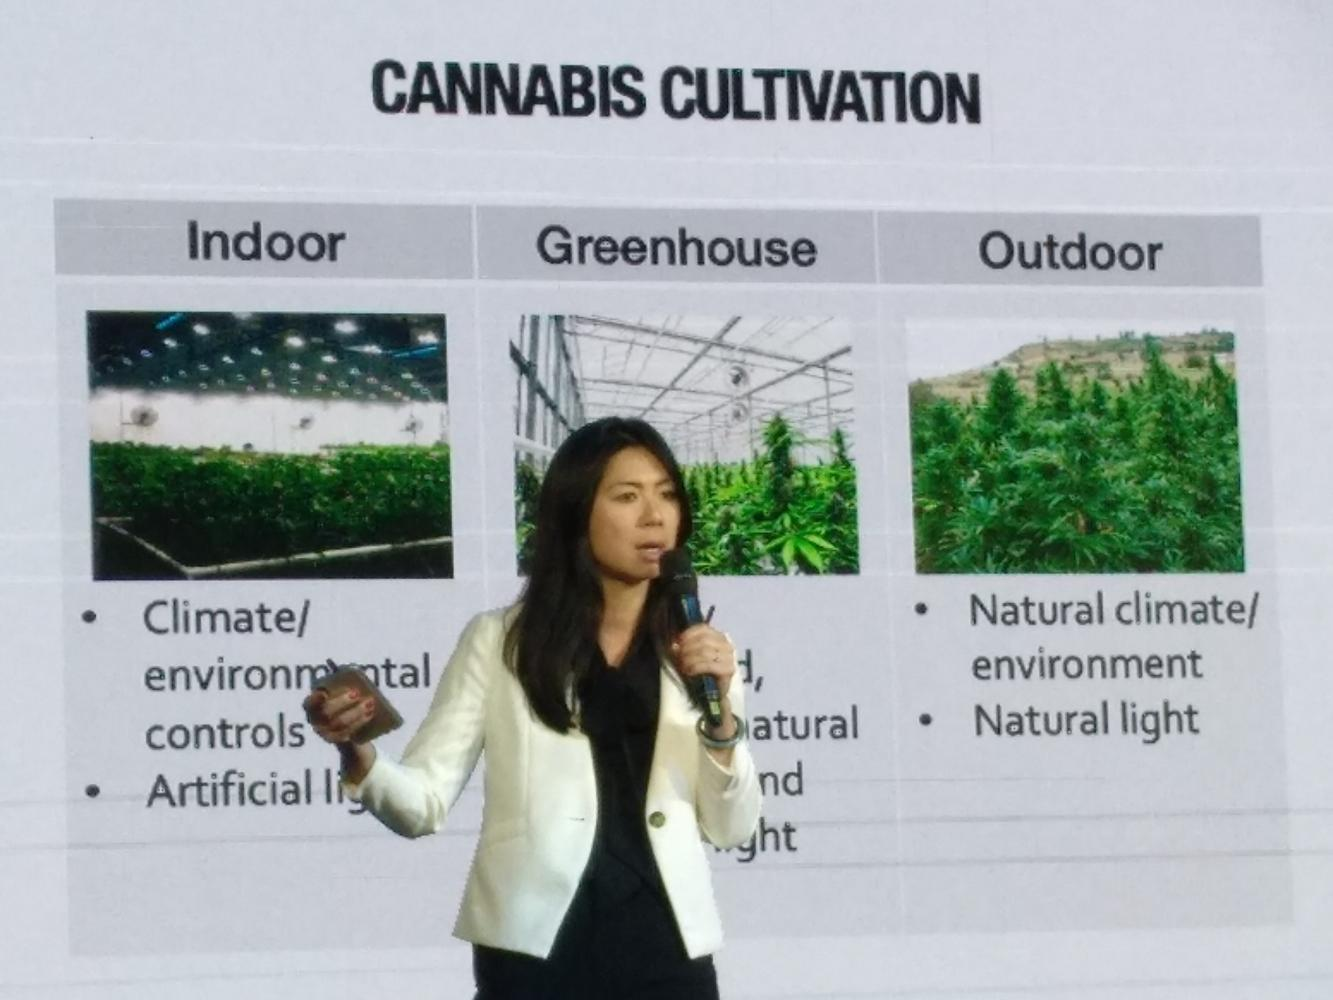 Ms Kelly talks about the potential economic boost from a legal cannabis industry in Thailand. (Photo by Tharittawat Samejaidee)